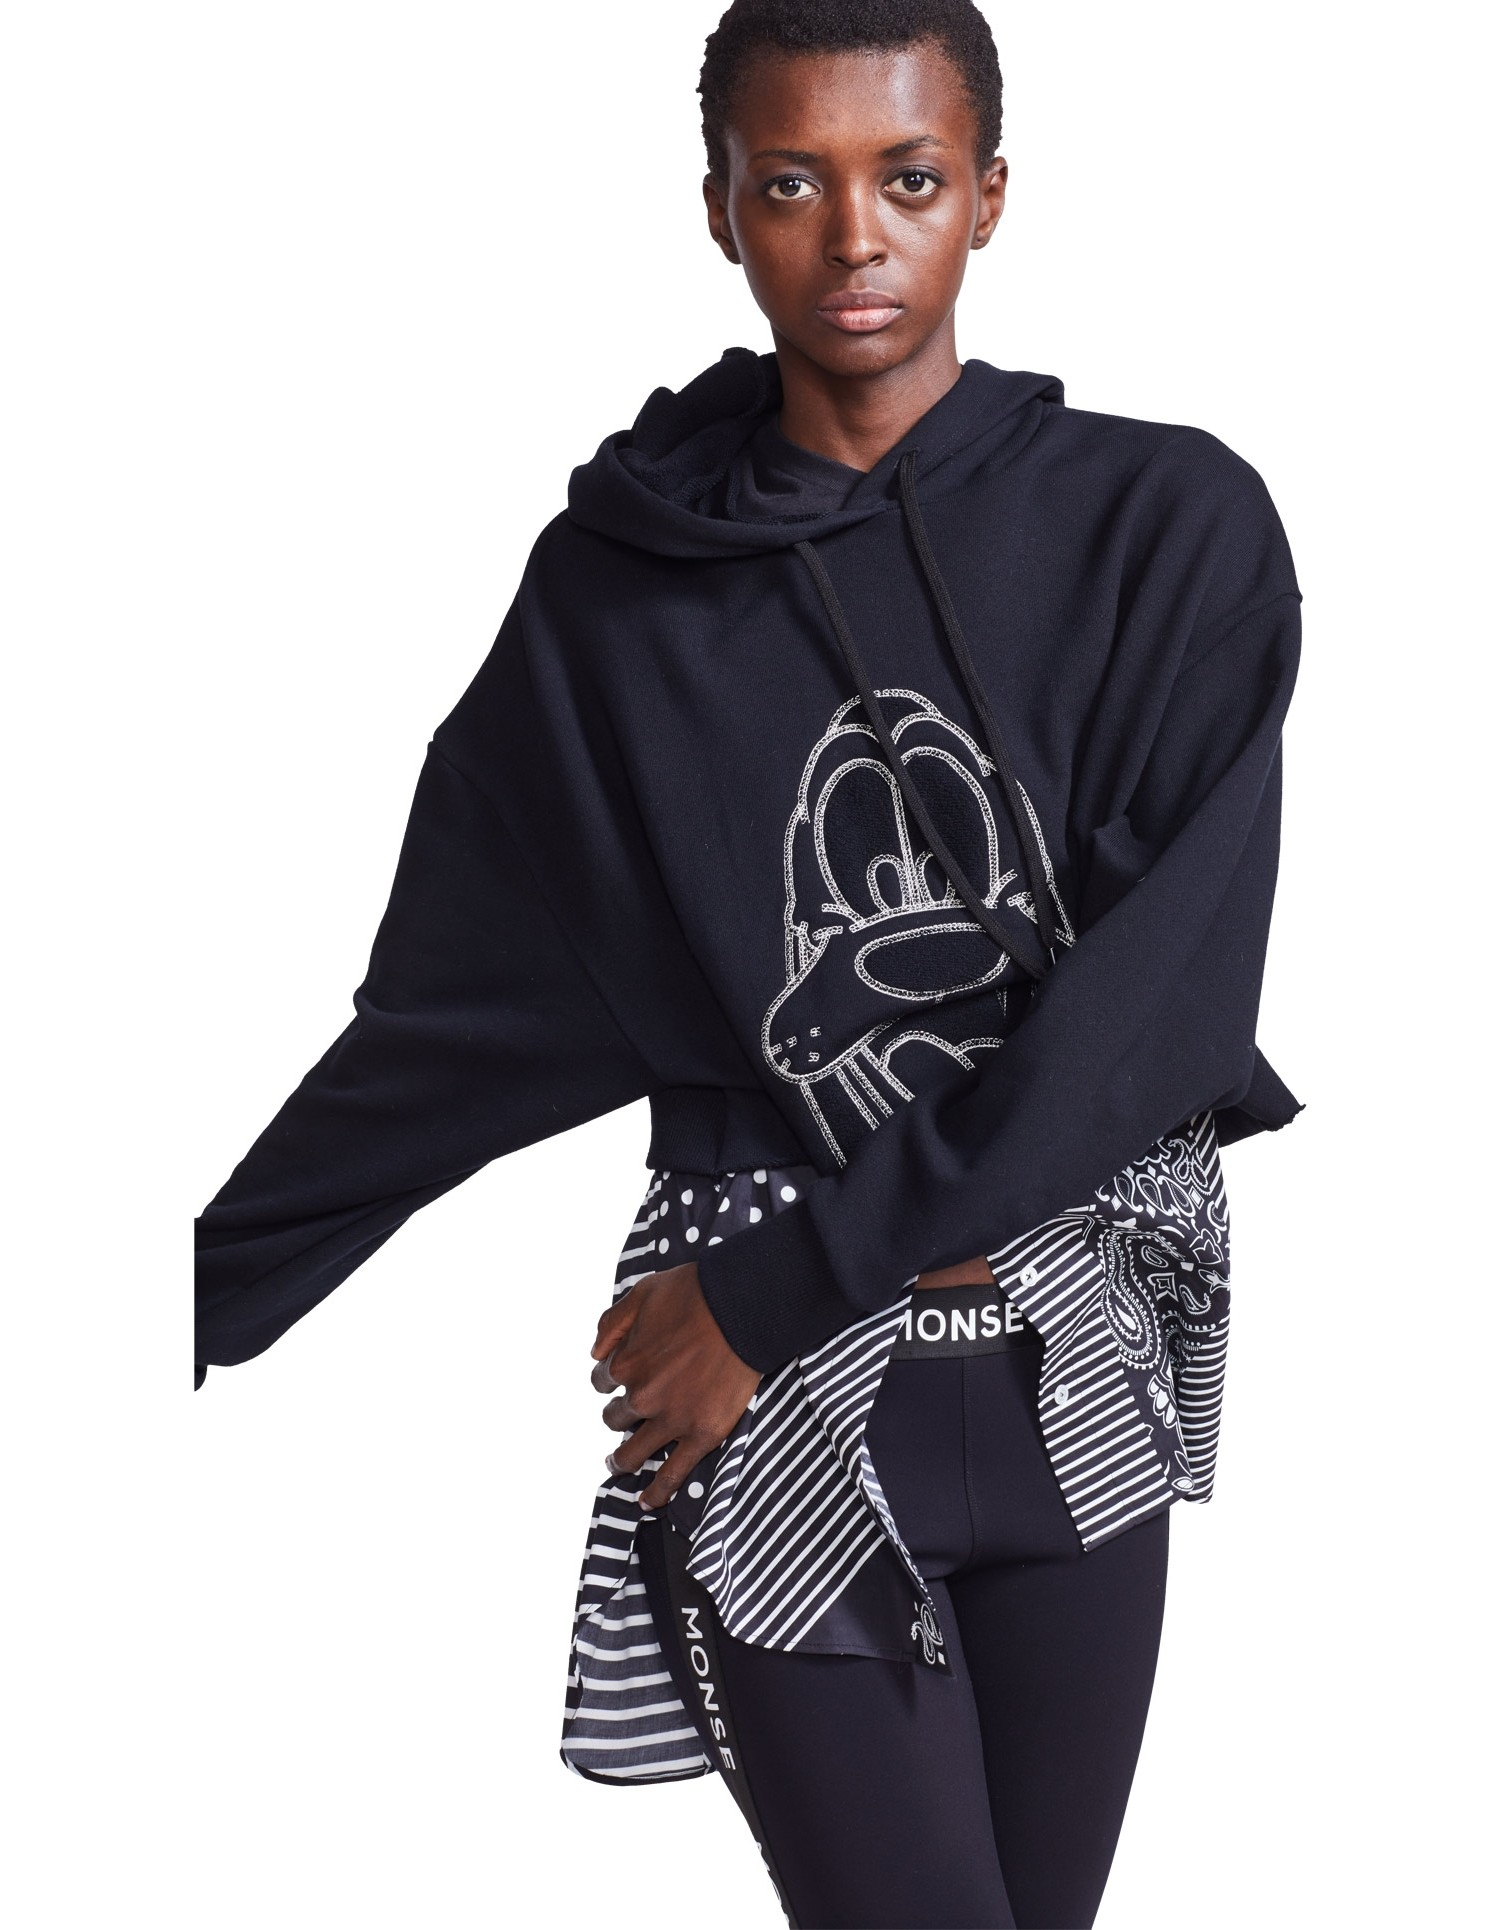 MONSE Pluto Cropped Hoodie in Black on Model Front Detail